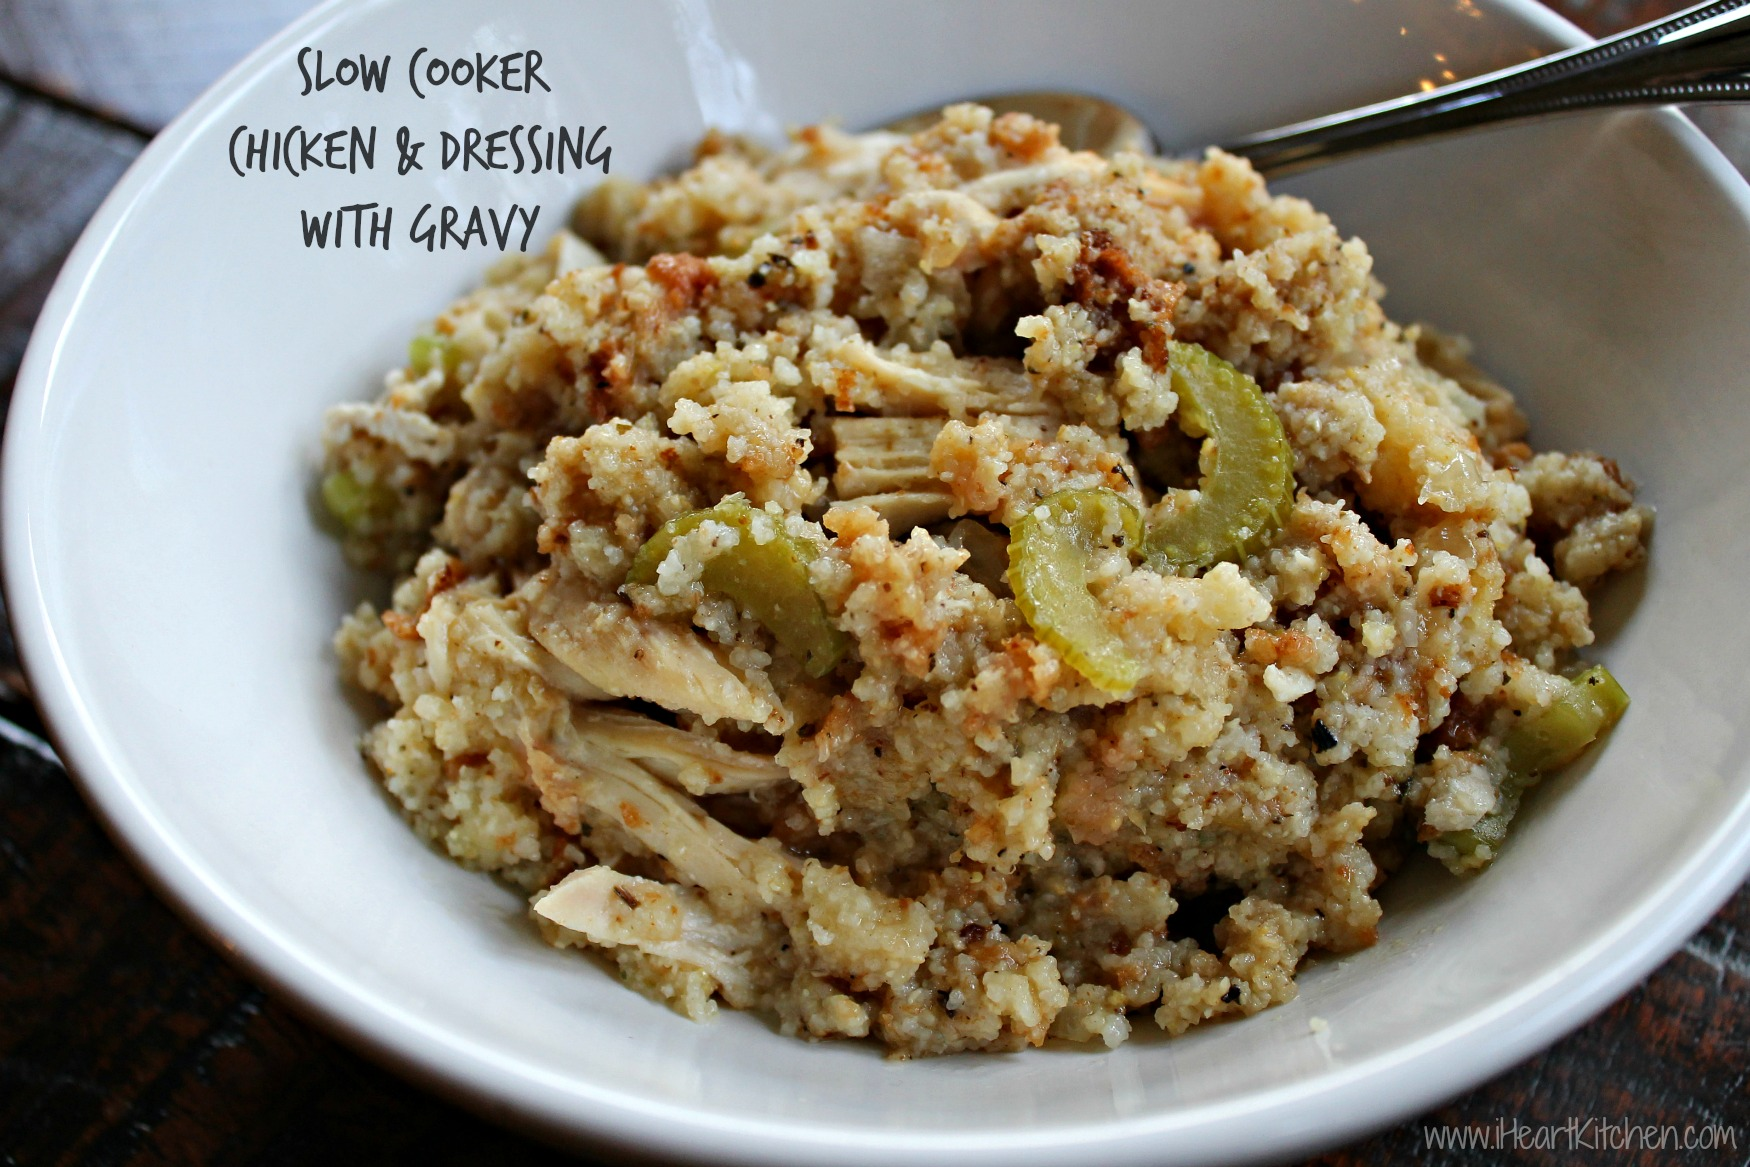 Slow Cooker Chicken & Dressing with Gravy